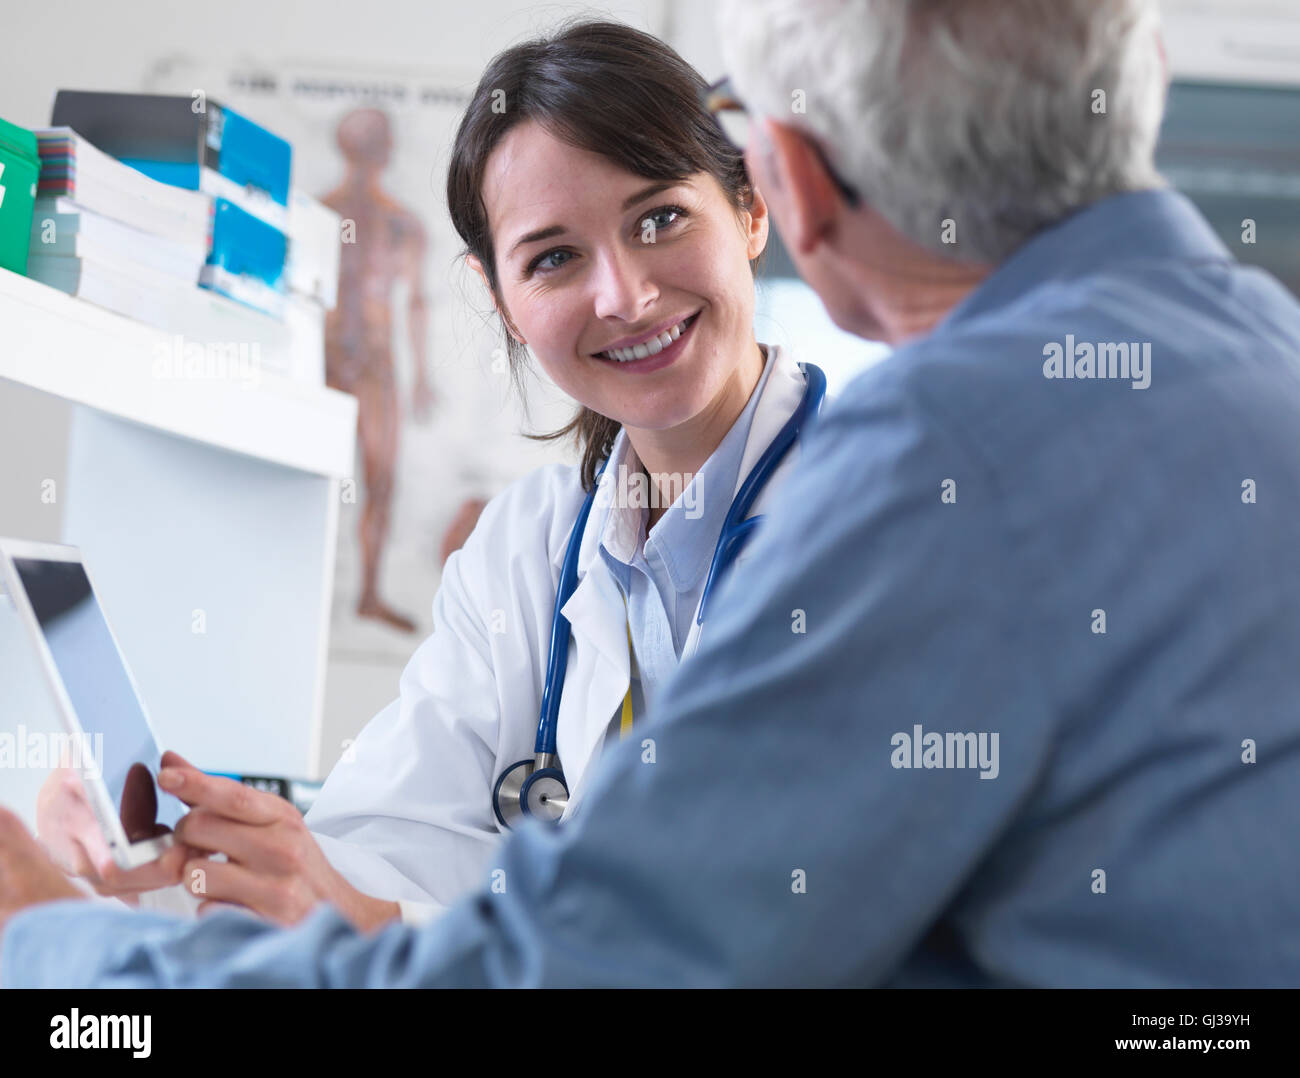 Doctor sharing health information on digital tablet with patient in clinic - Stock Image